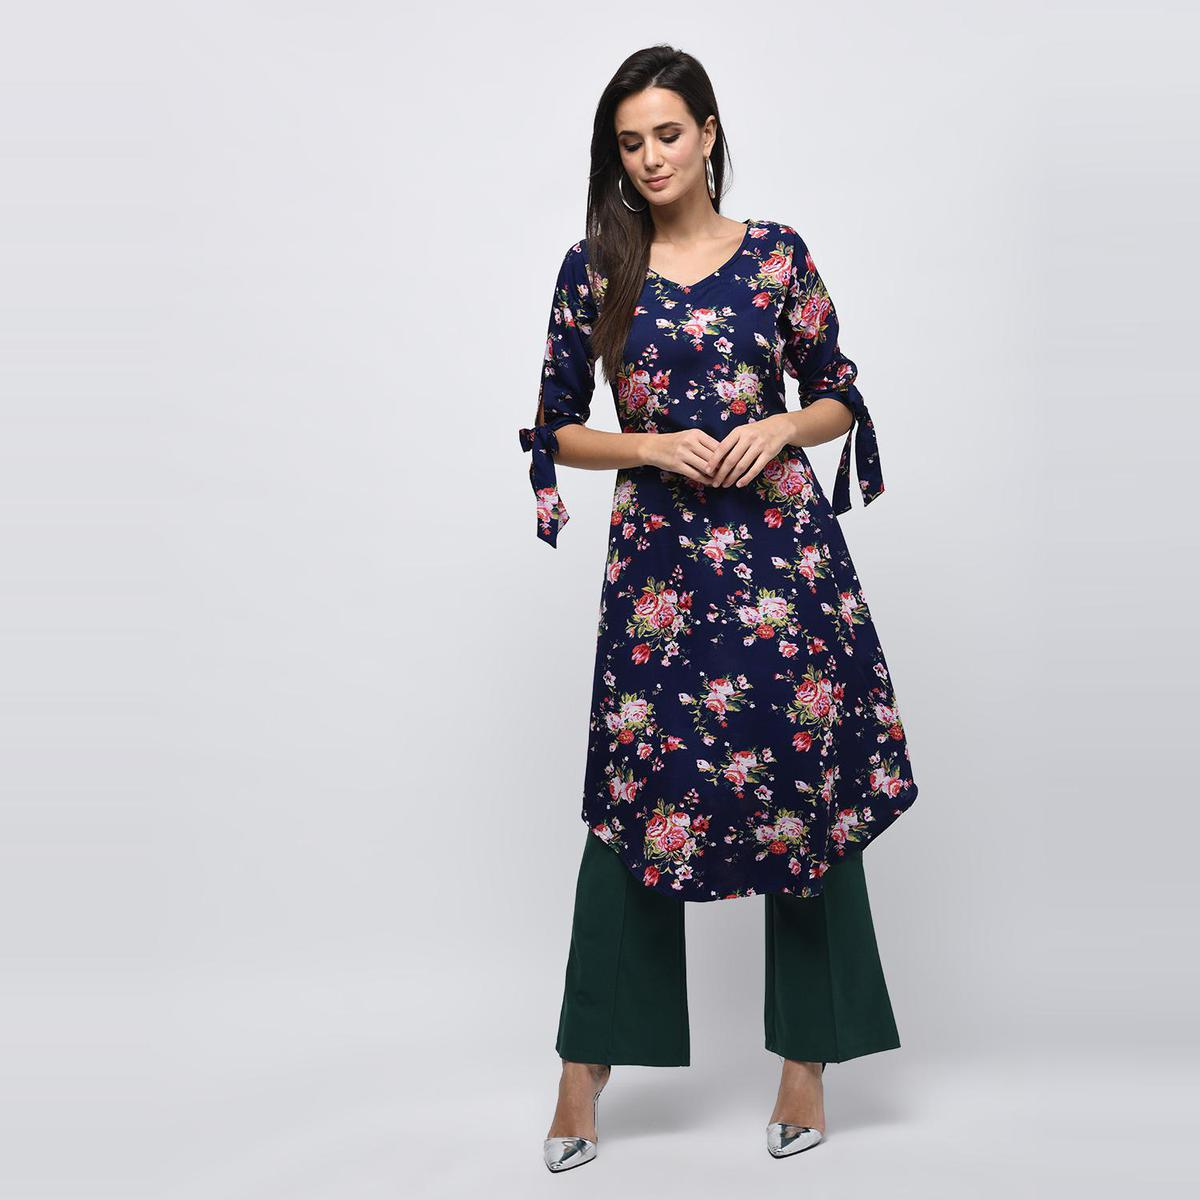 Myshka - Women's Dark Blue Printed Regular Sleeves V - Neck Casual Polyester Kurti